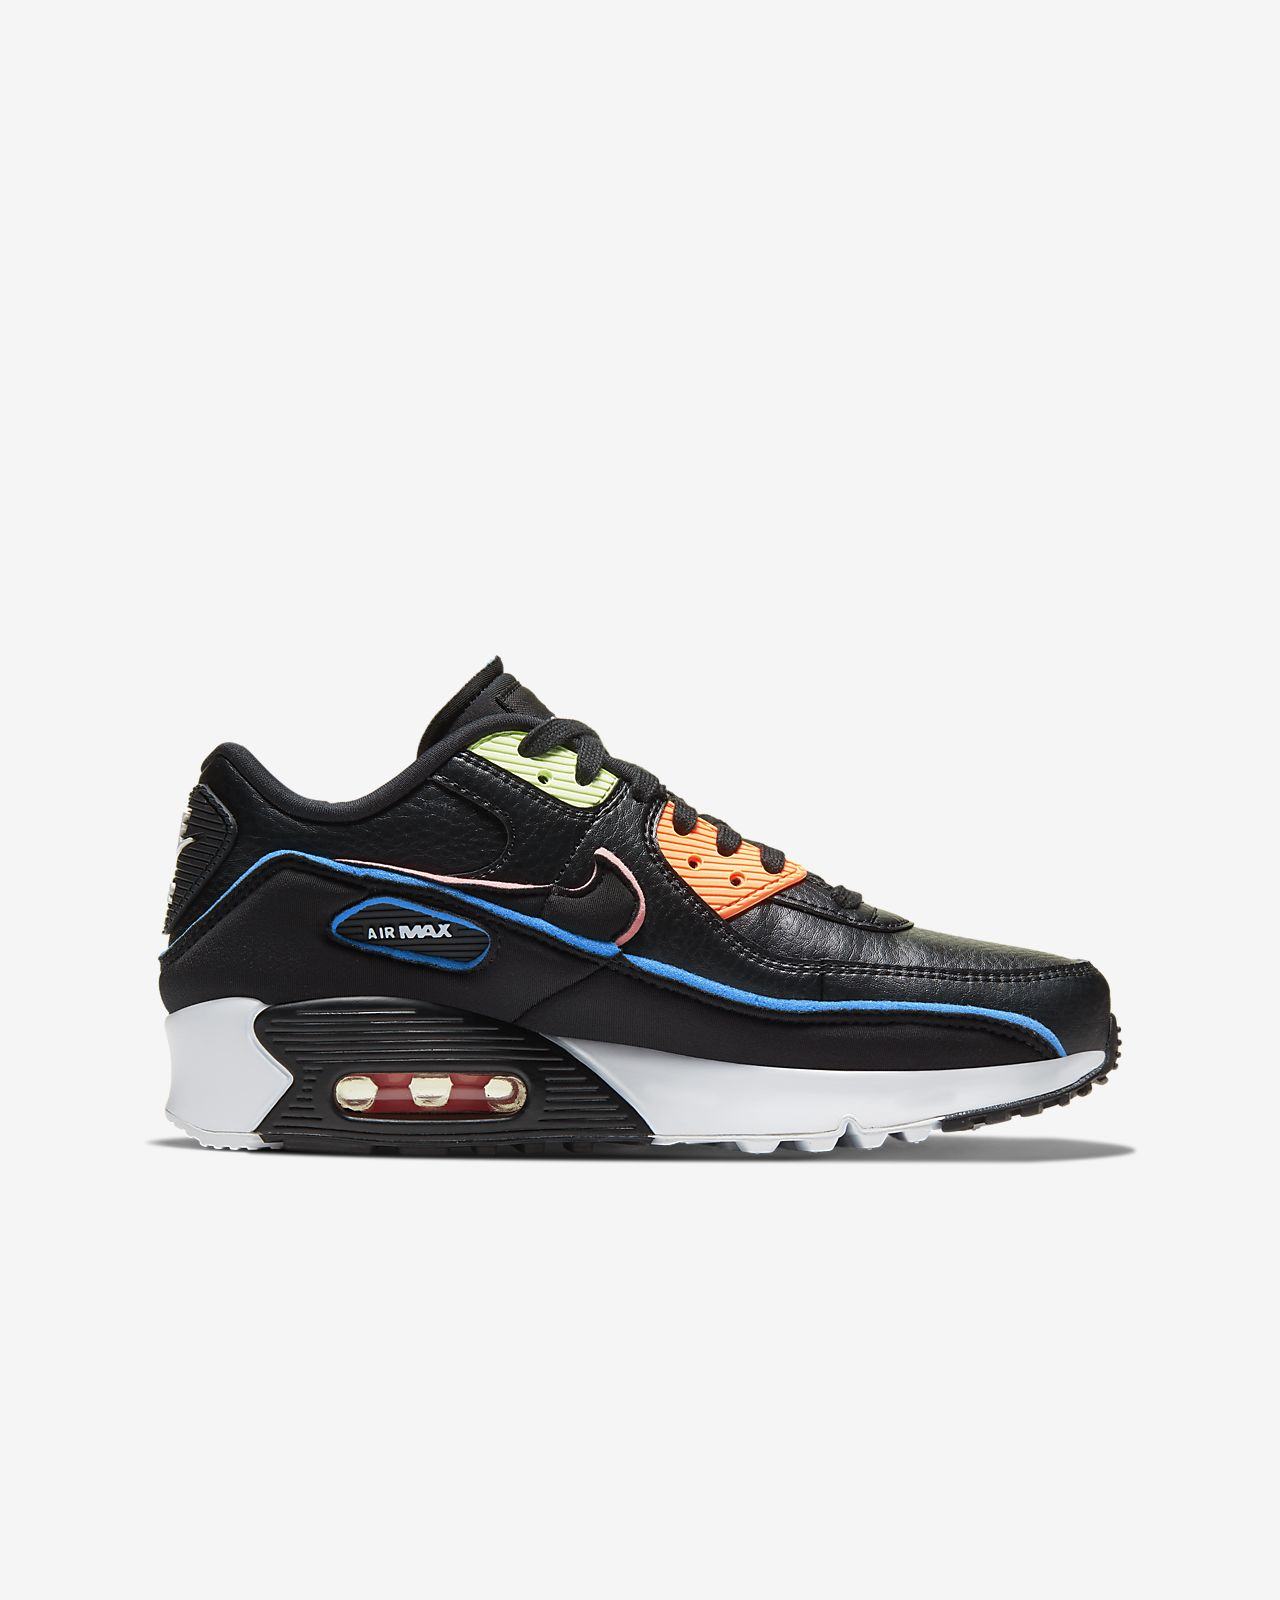 Nike Official Nike Air Max 90 Se Big Kids Shoe Online Store Mail